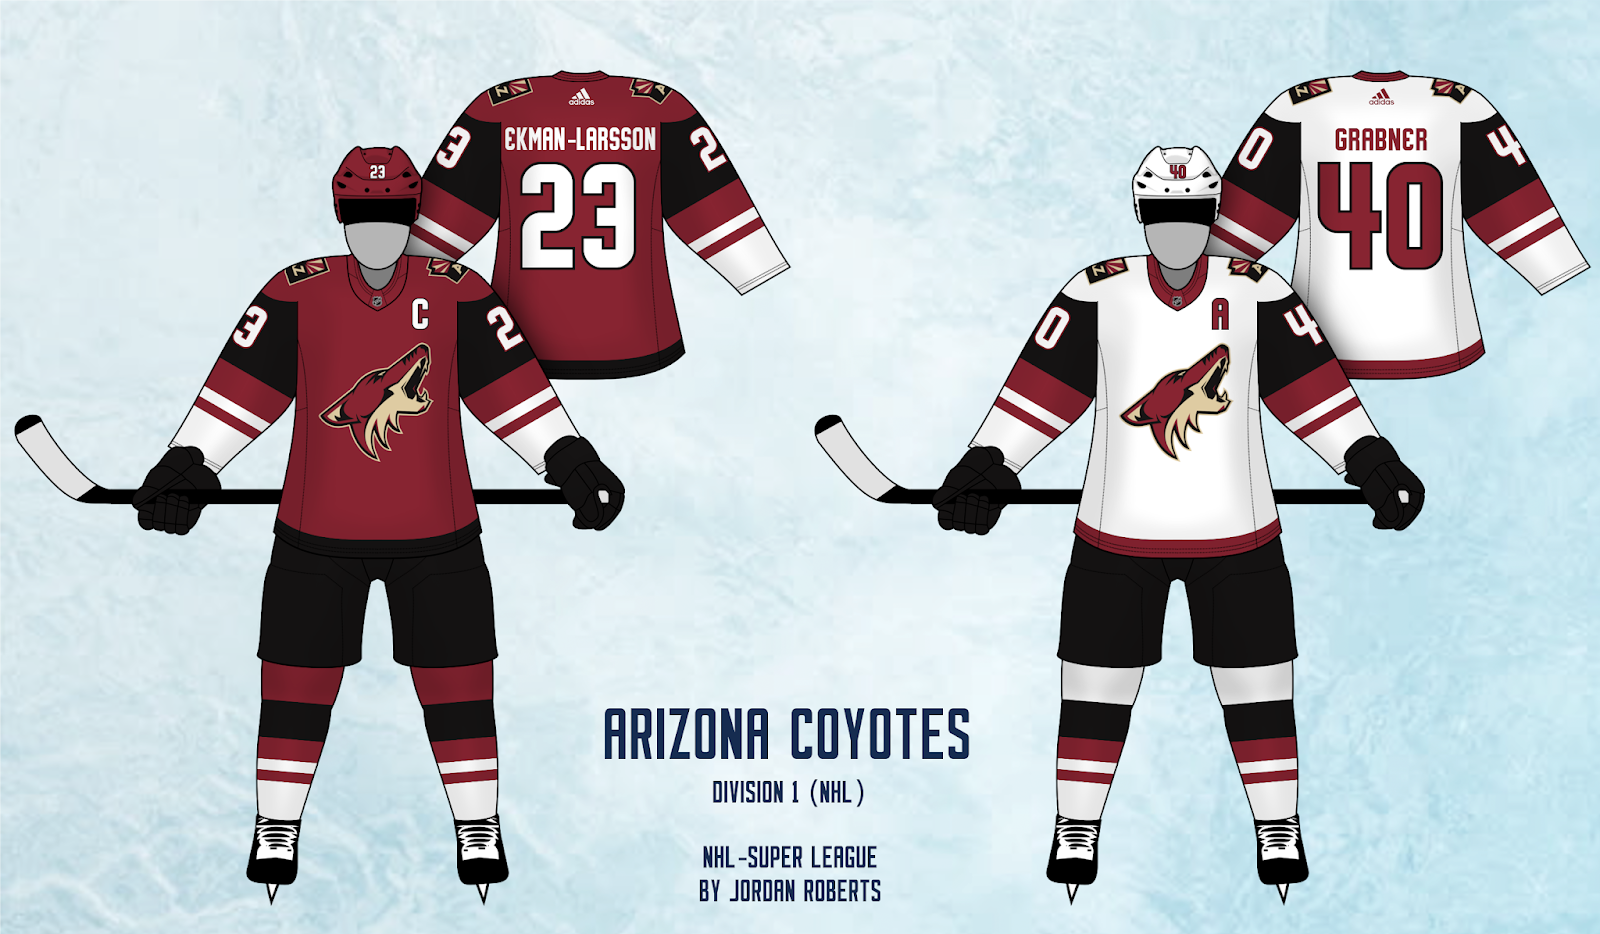 coyotes1.png